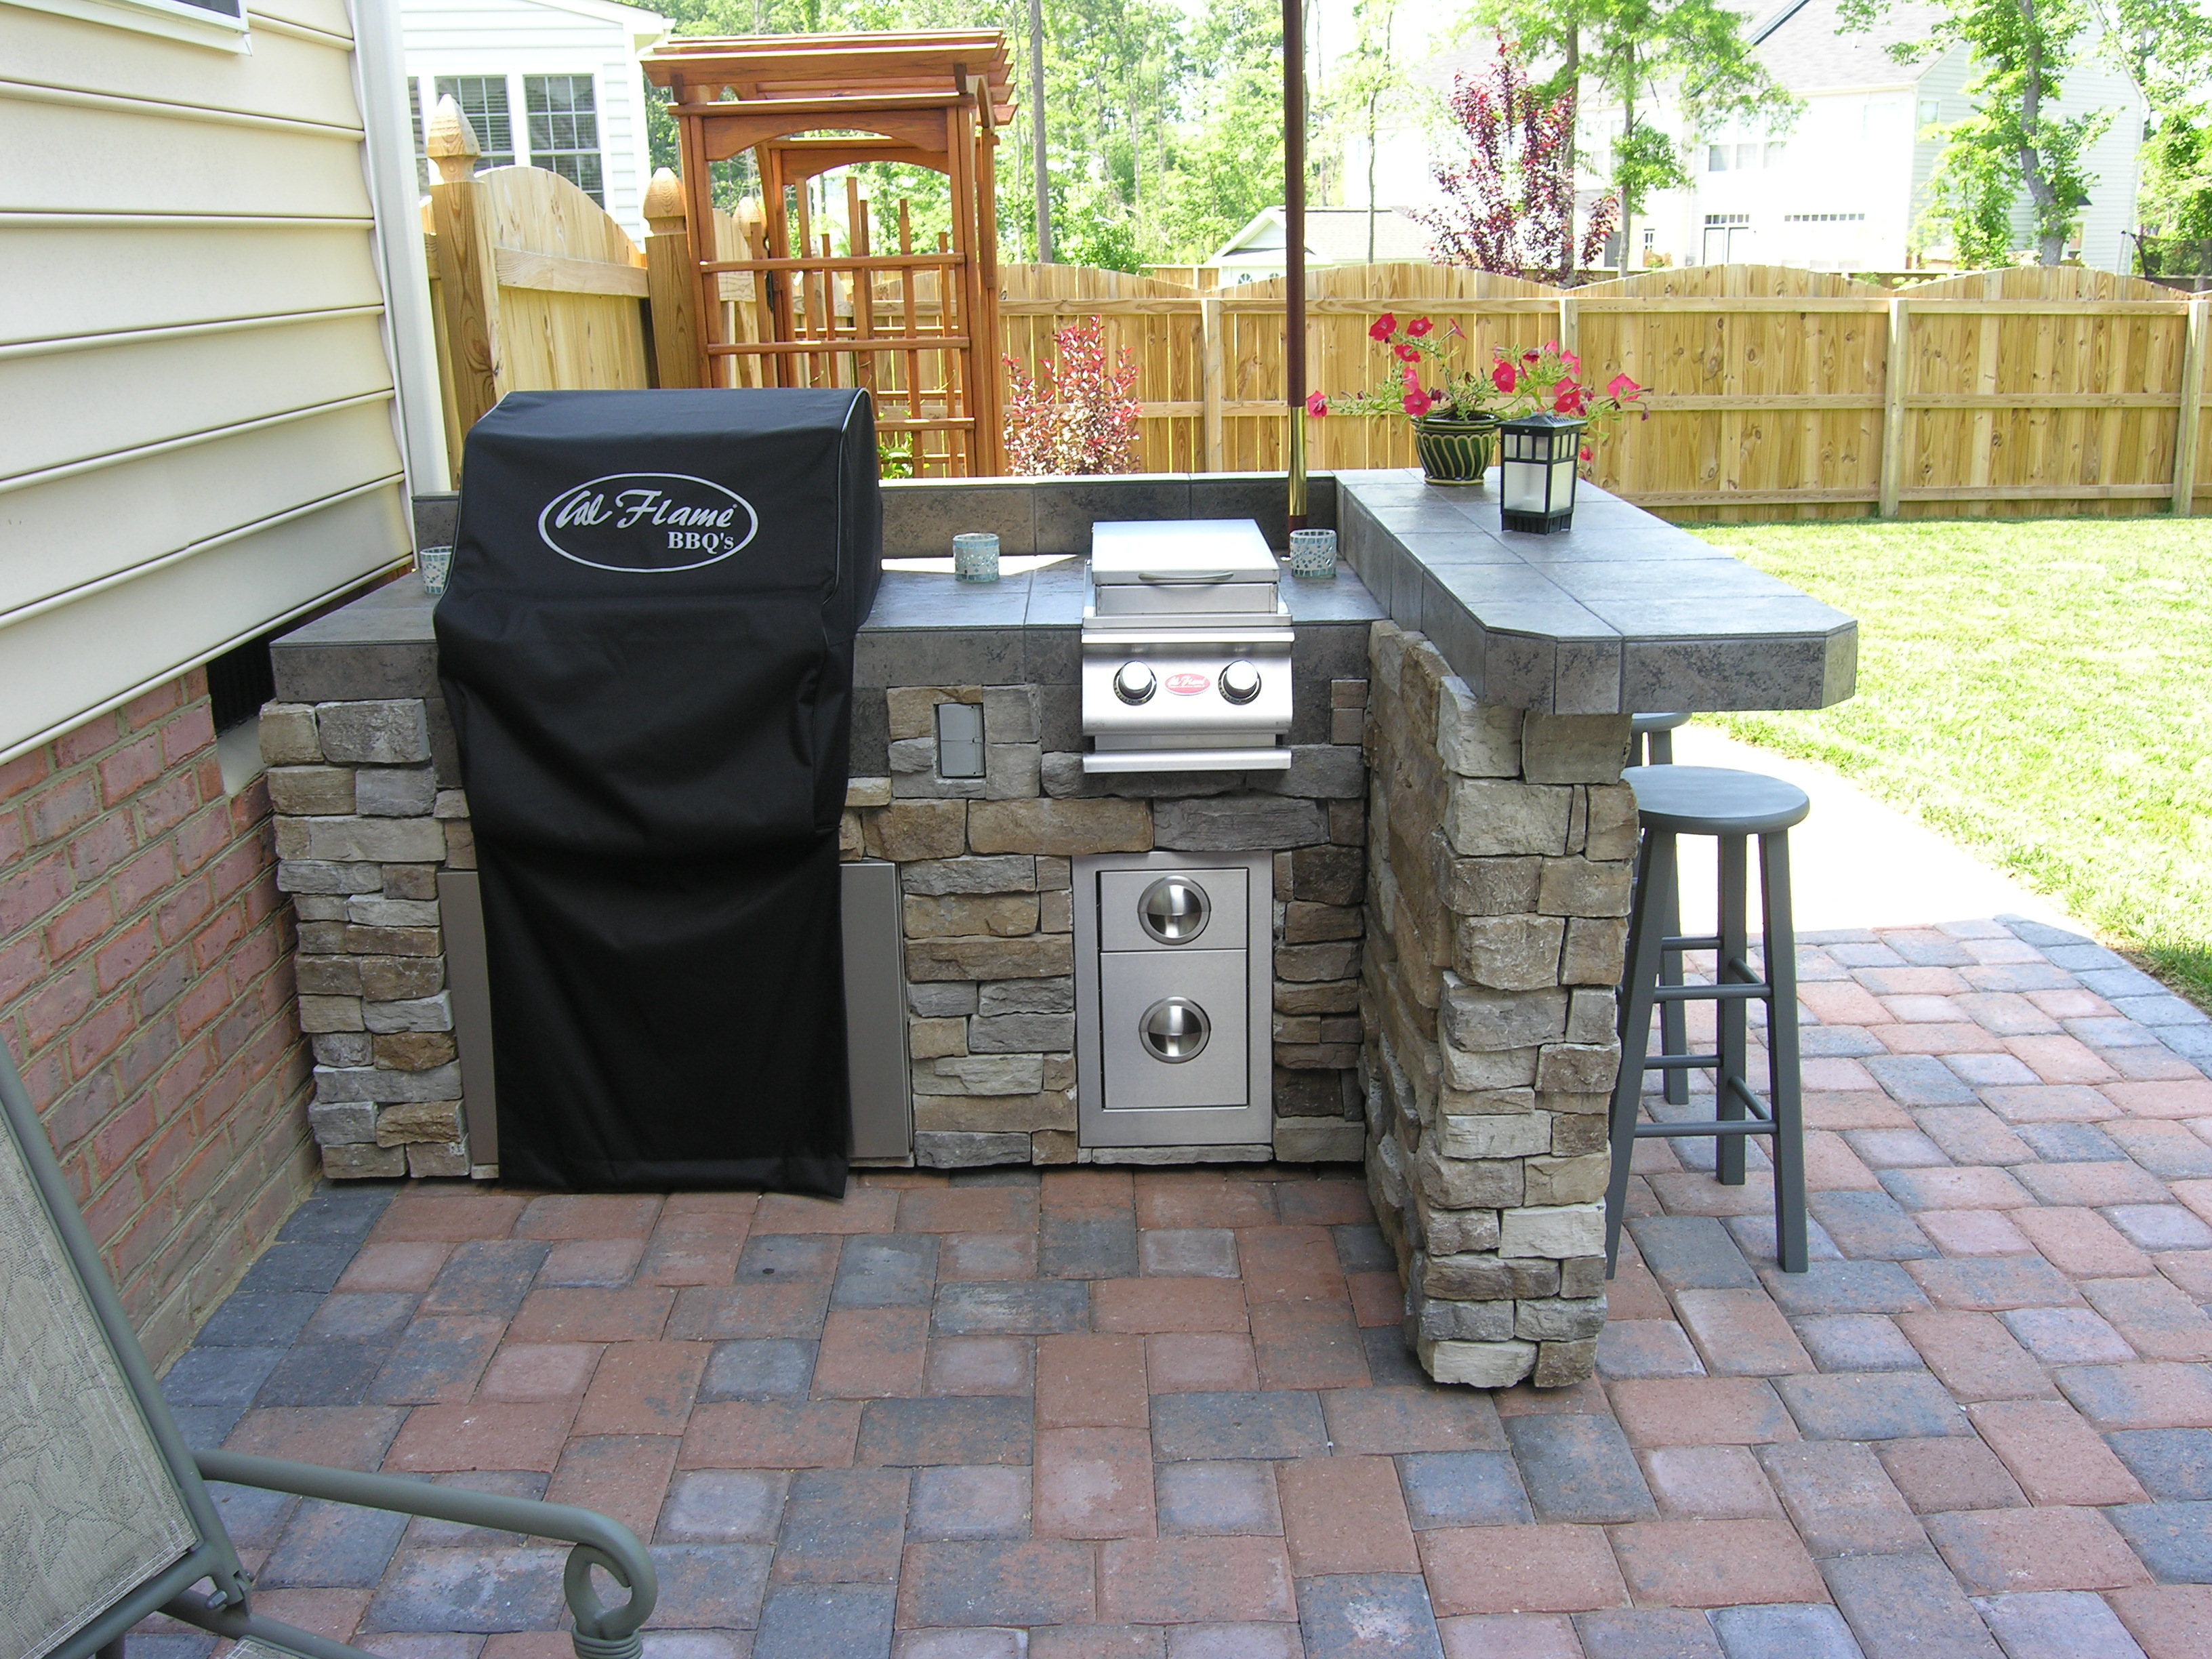 outdoor bbq kitchen outdoor kitchen lighting 25 best ideas about Outdoor Bbq Kitchen on Pinterest Outdoor grill area Outdoor kitchens and Backyard kitchen